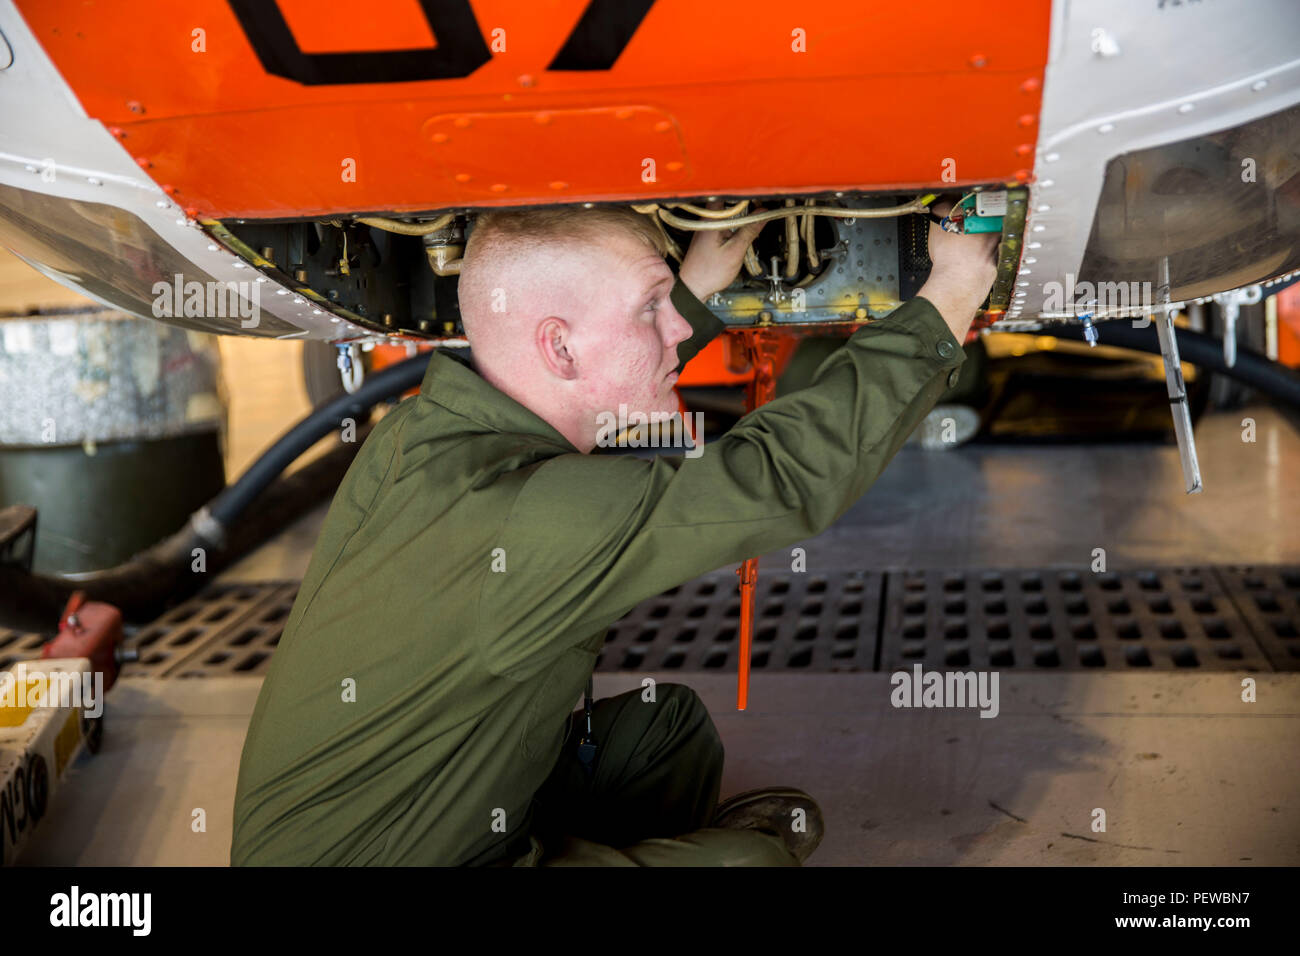 """Lance Cpl. Kalib Turner, a corrosion treatment avionics technician chief with Headquarters and Headquarters Squadron Search and Rescue (SAR), stationed out of Marine Corps Air Station Yuma, Ariz., checks for corrosion in the circuit breaker box of a HH-1N """"Huey"""" helicopter in the SAR hangar, Thursday, Feb. 4, 2016. - Stock Image"""